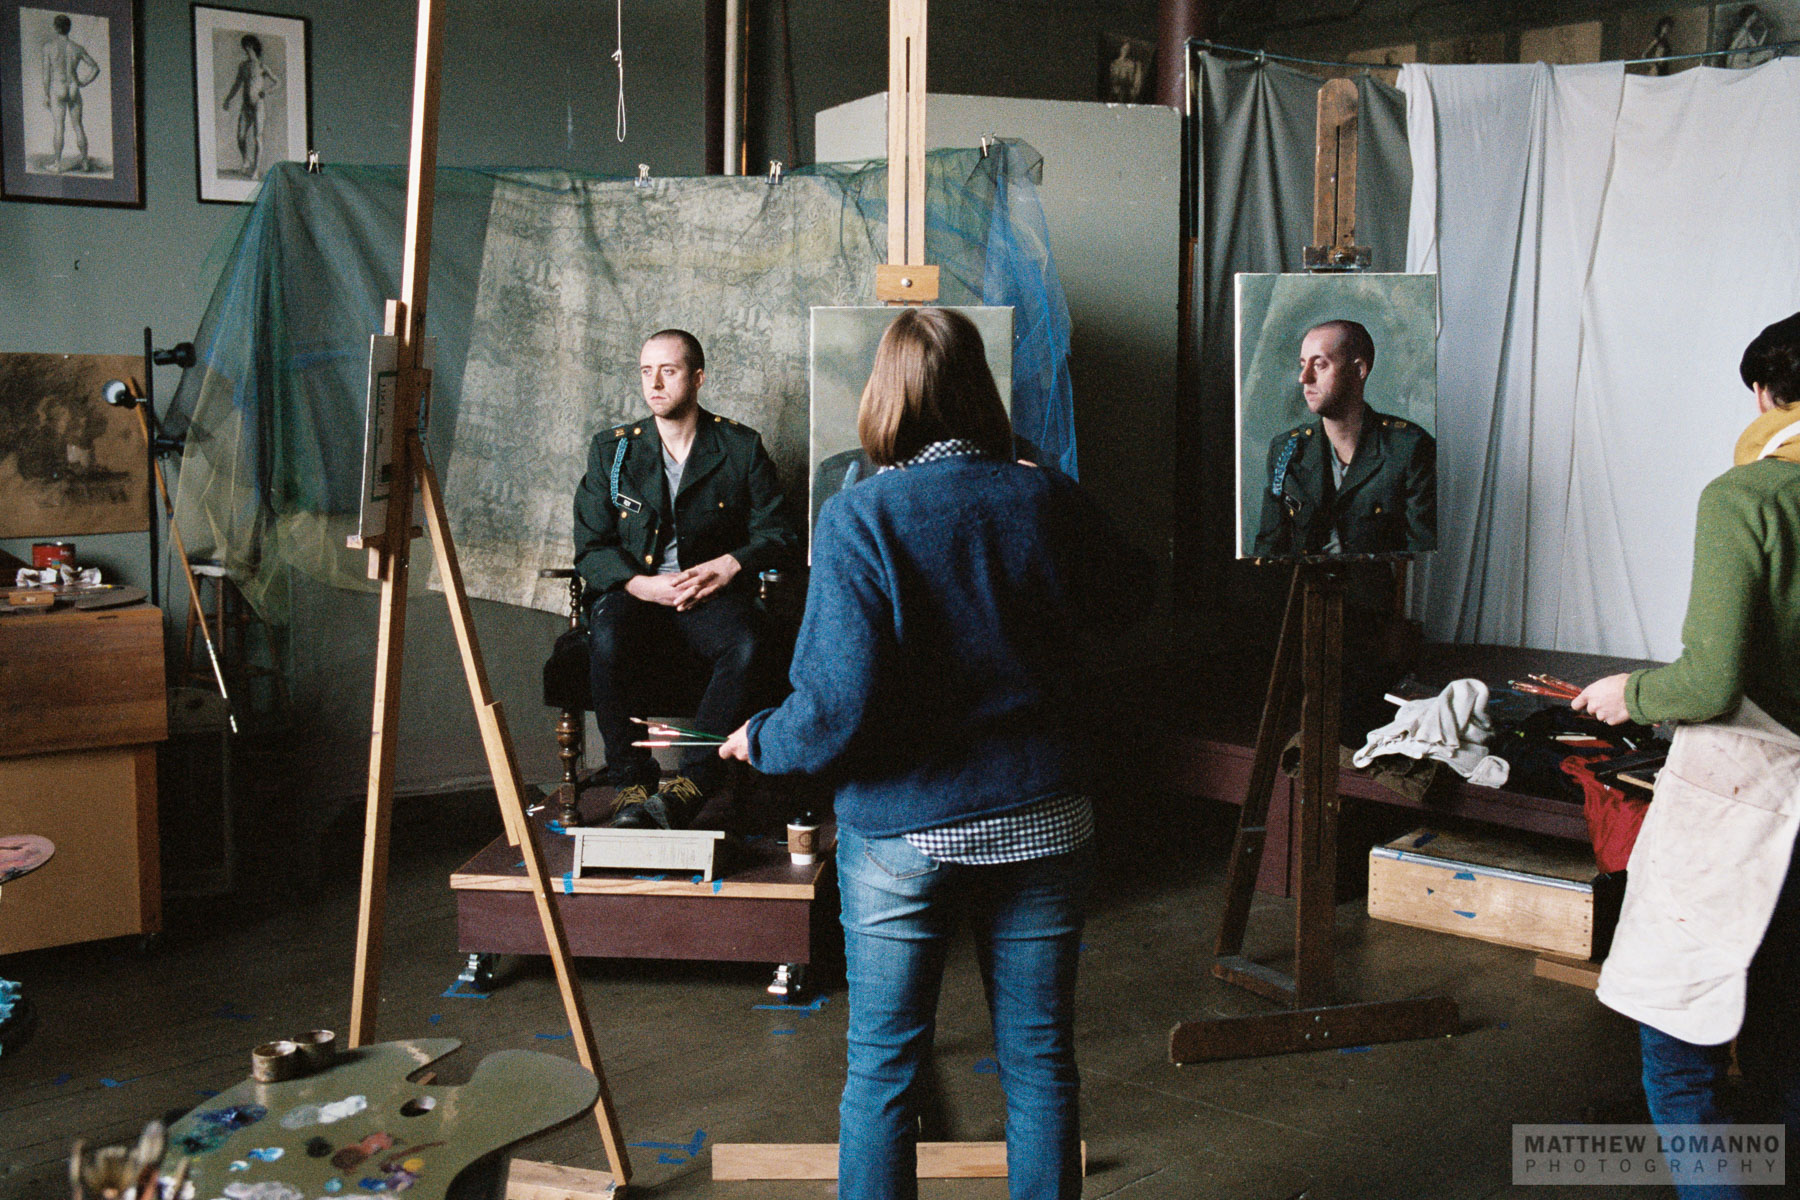 Ingbretson_atelier_working_by_Lomanno-2.jpg